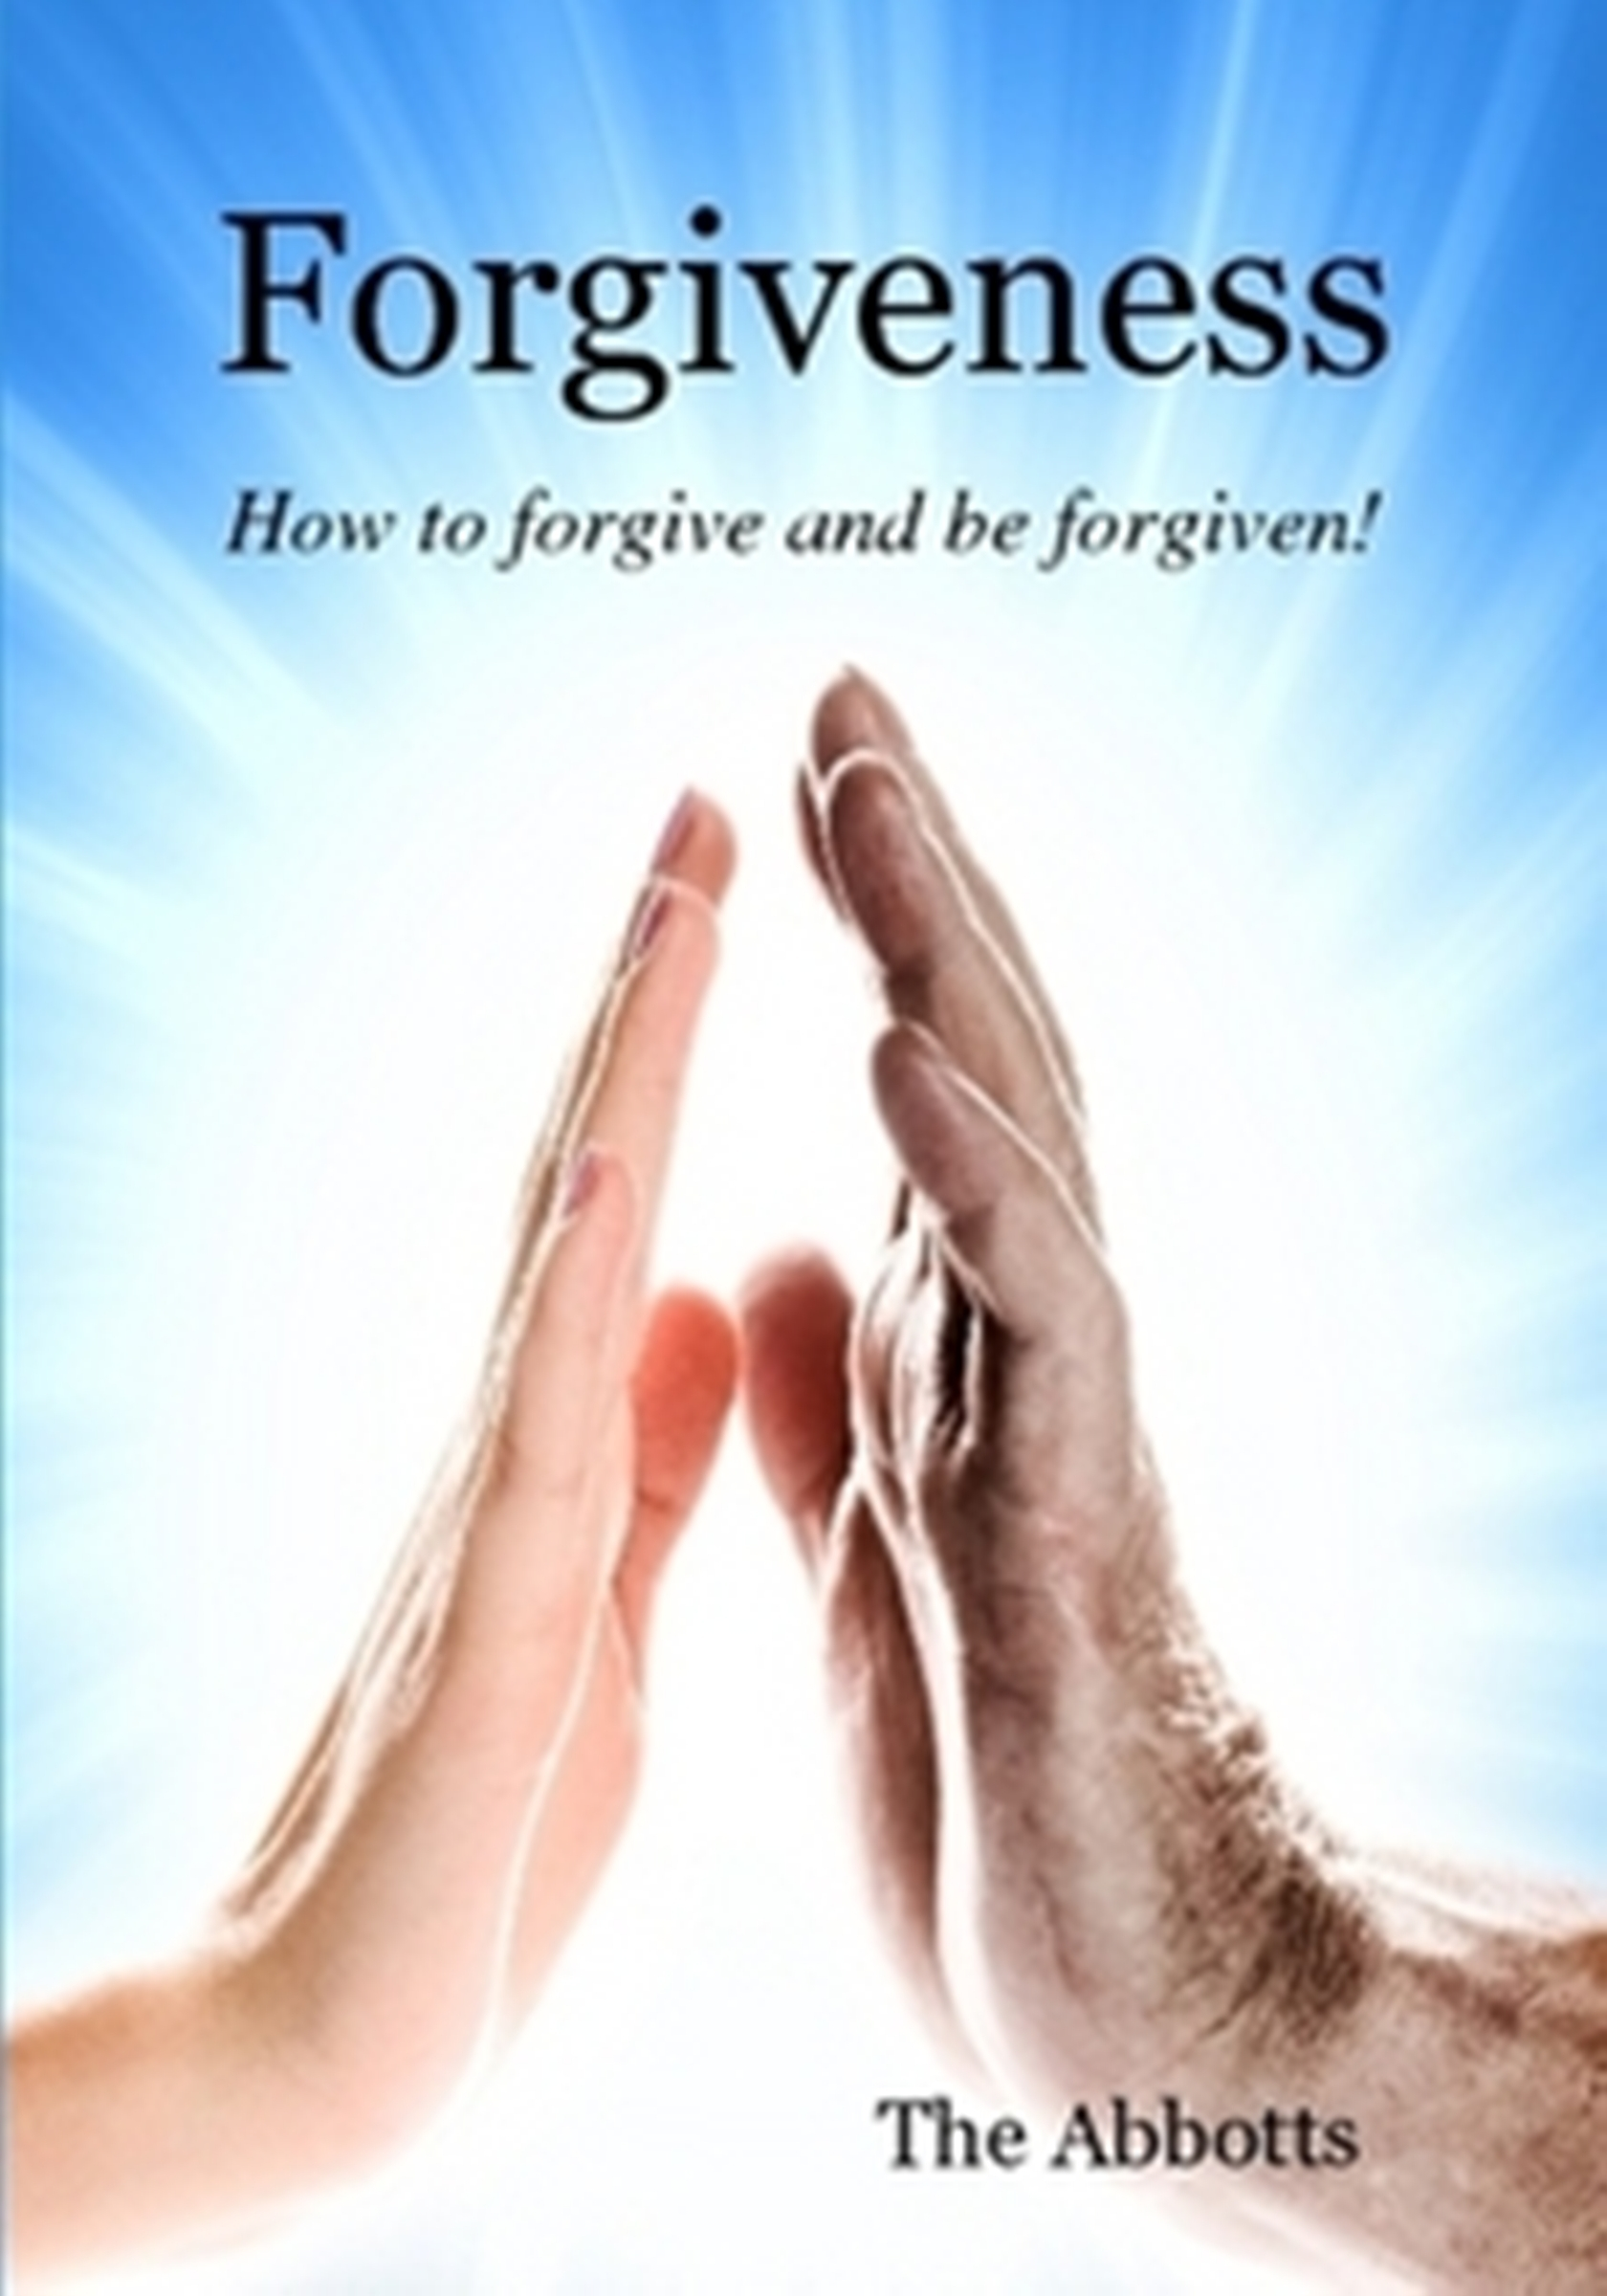 Forgiveness: How to Forgive and be Forgiven!